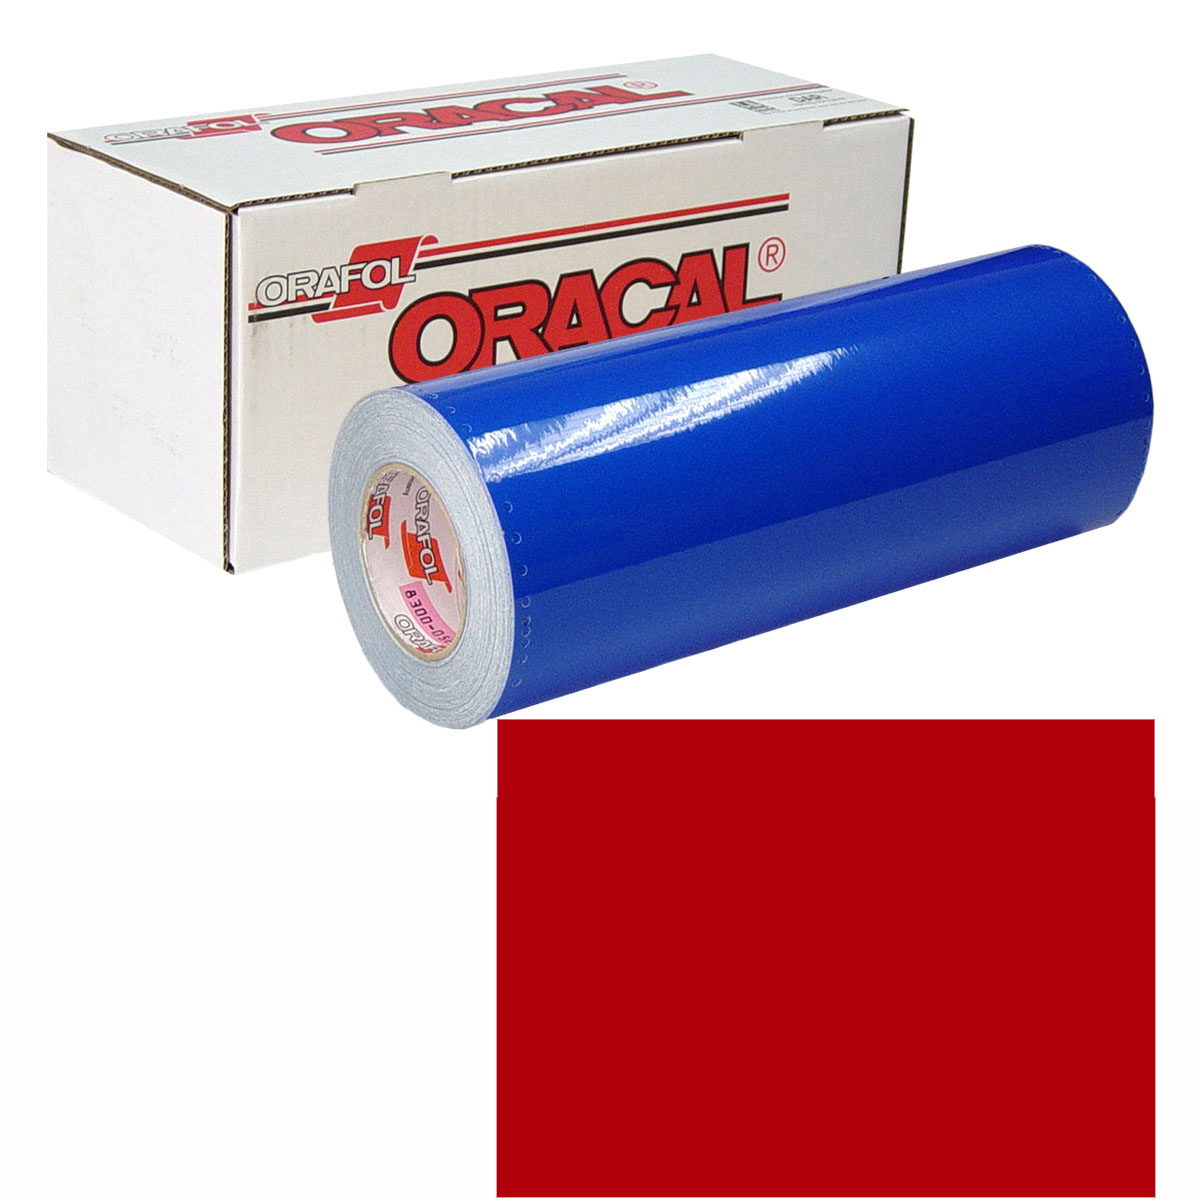 ORACAL 631 Unp 48In X 50Yd 031 Red